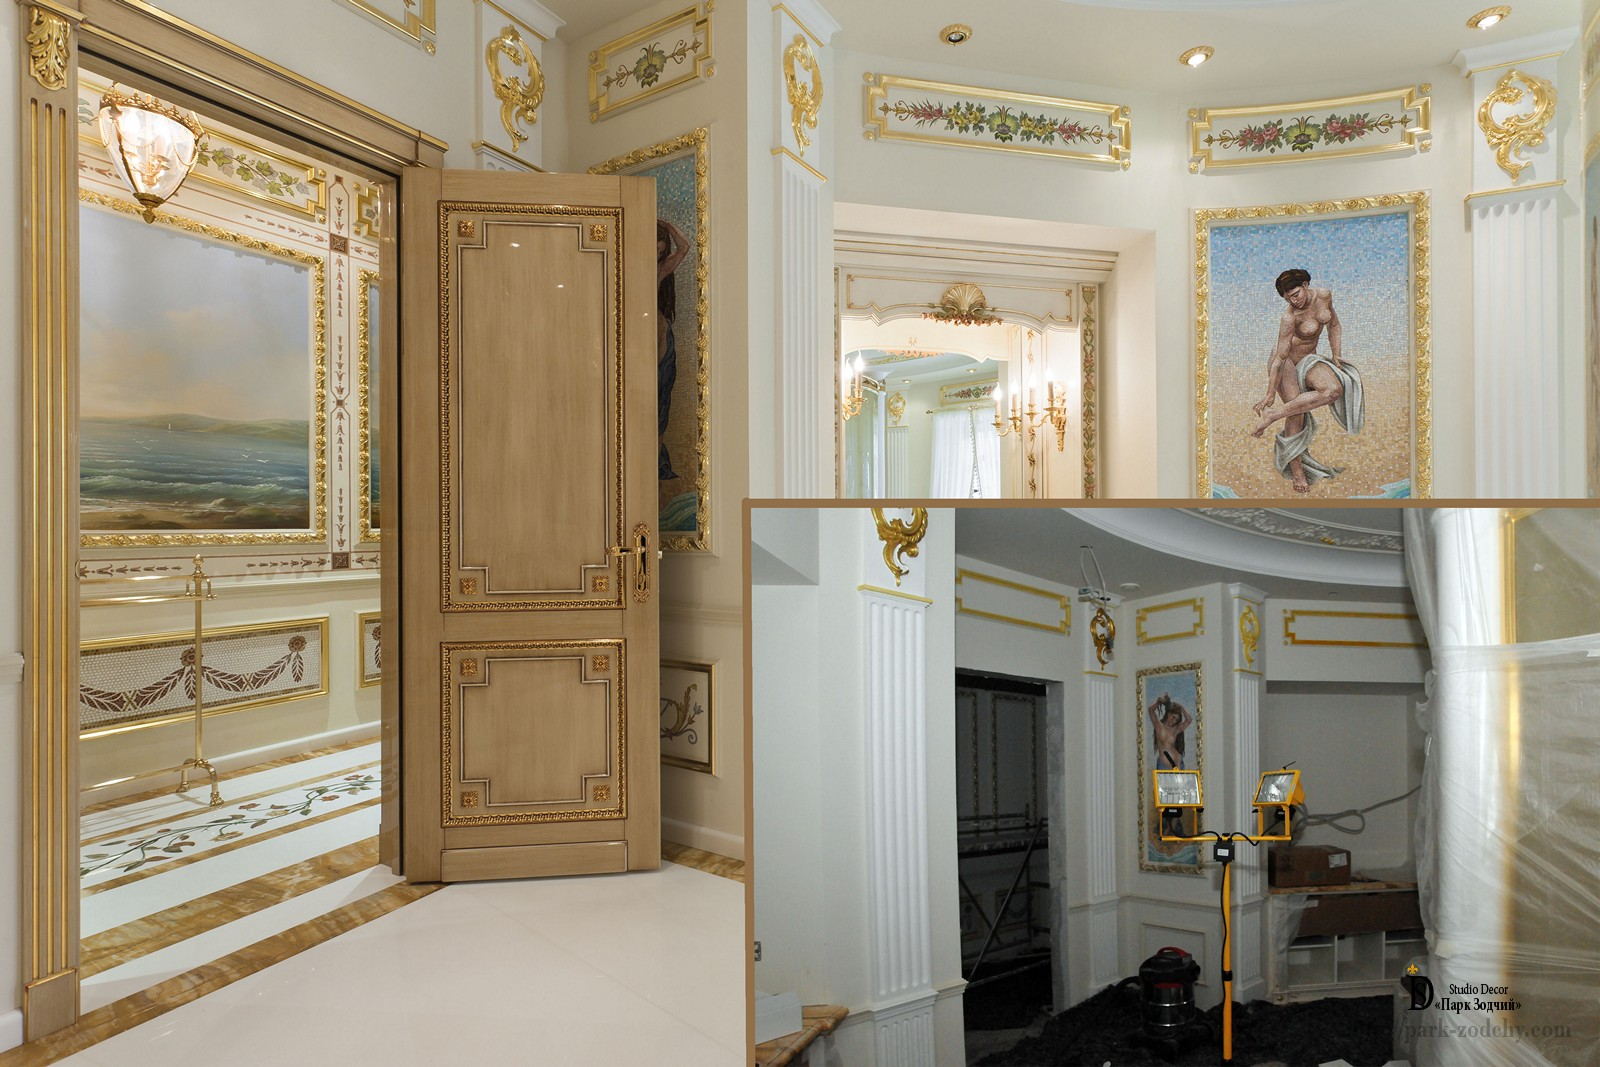 Gilding stucco and parquet in the interior